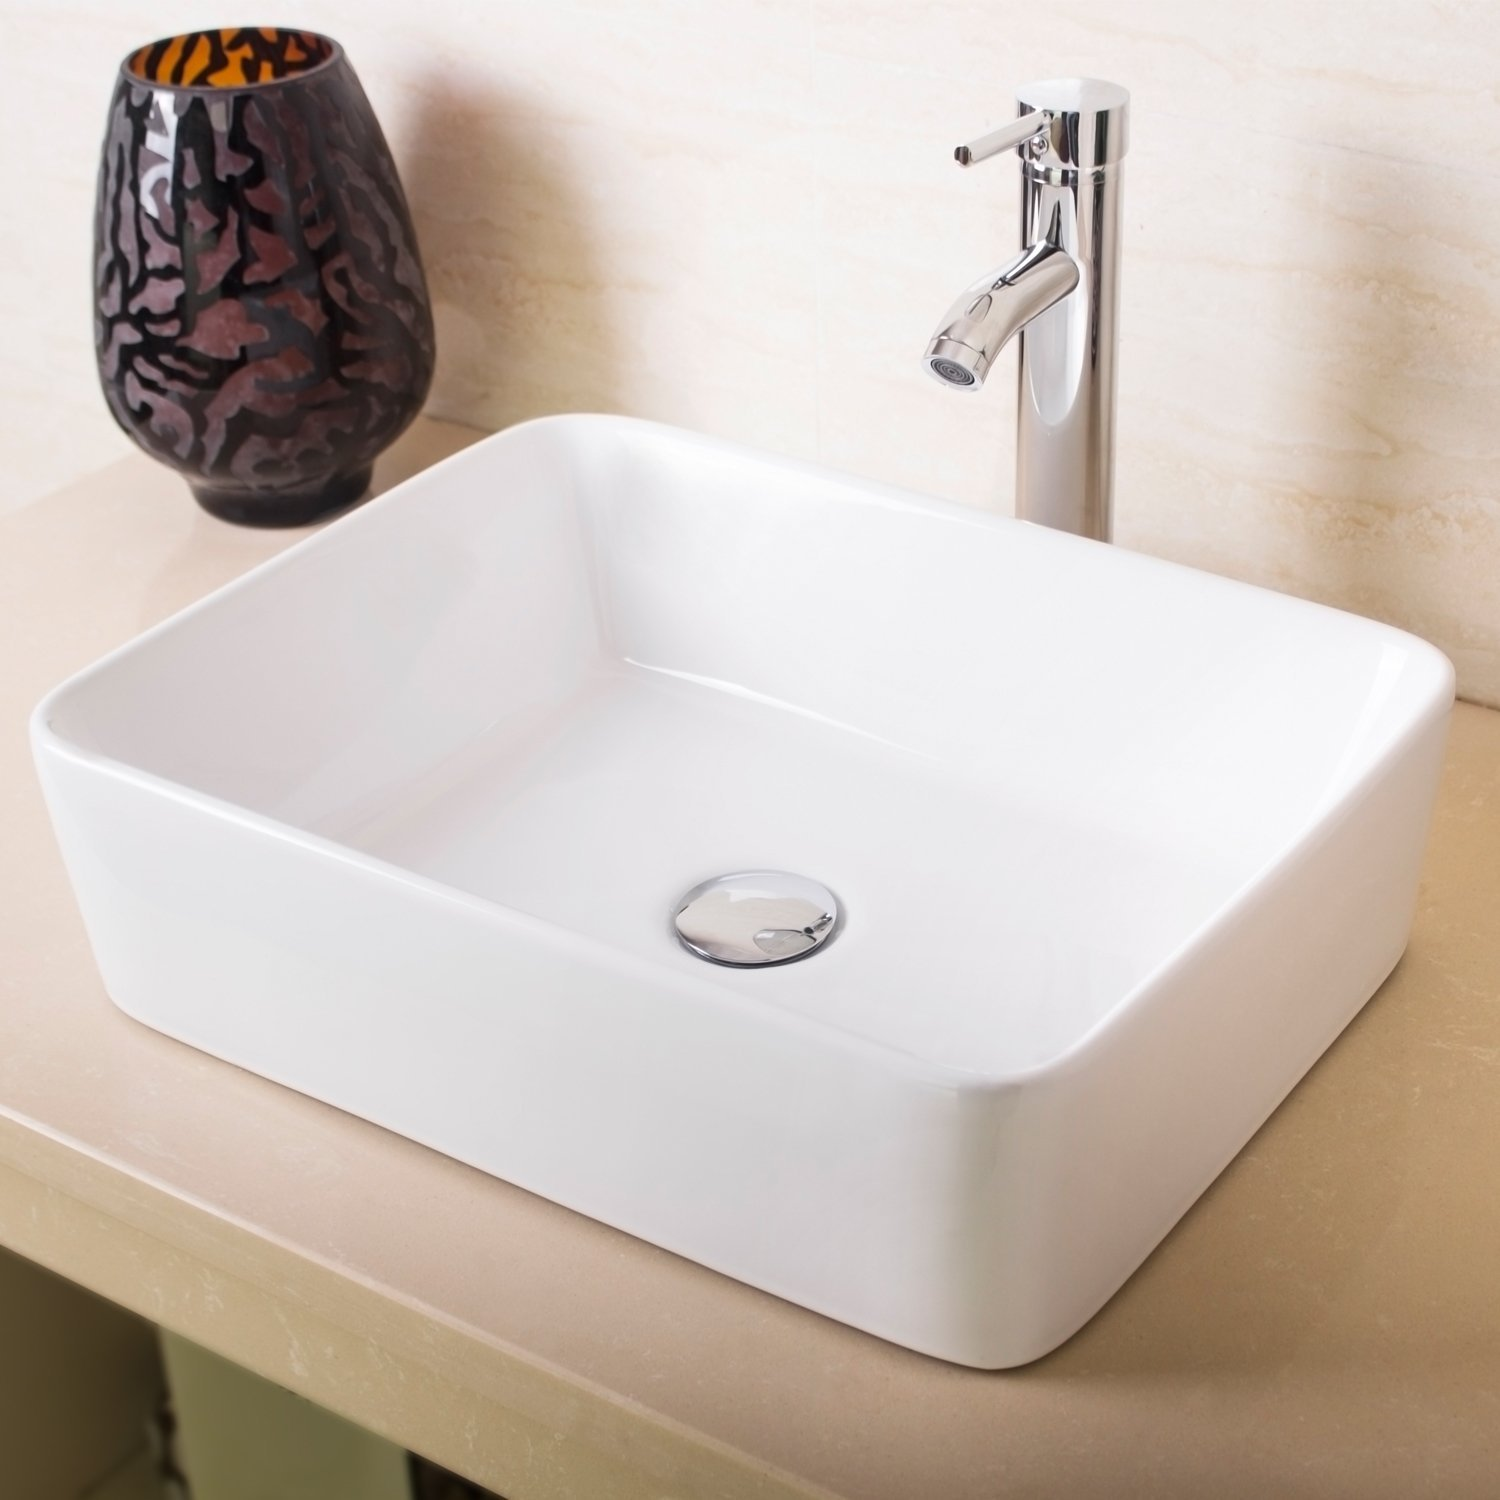 Ainfox Bathroom White Rectangle Porcelain Ceramic Vessel Vanity Sink Art Basin with Chrome Faucet and Pop up Drain Combo